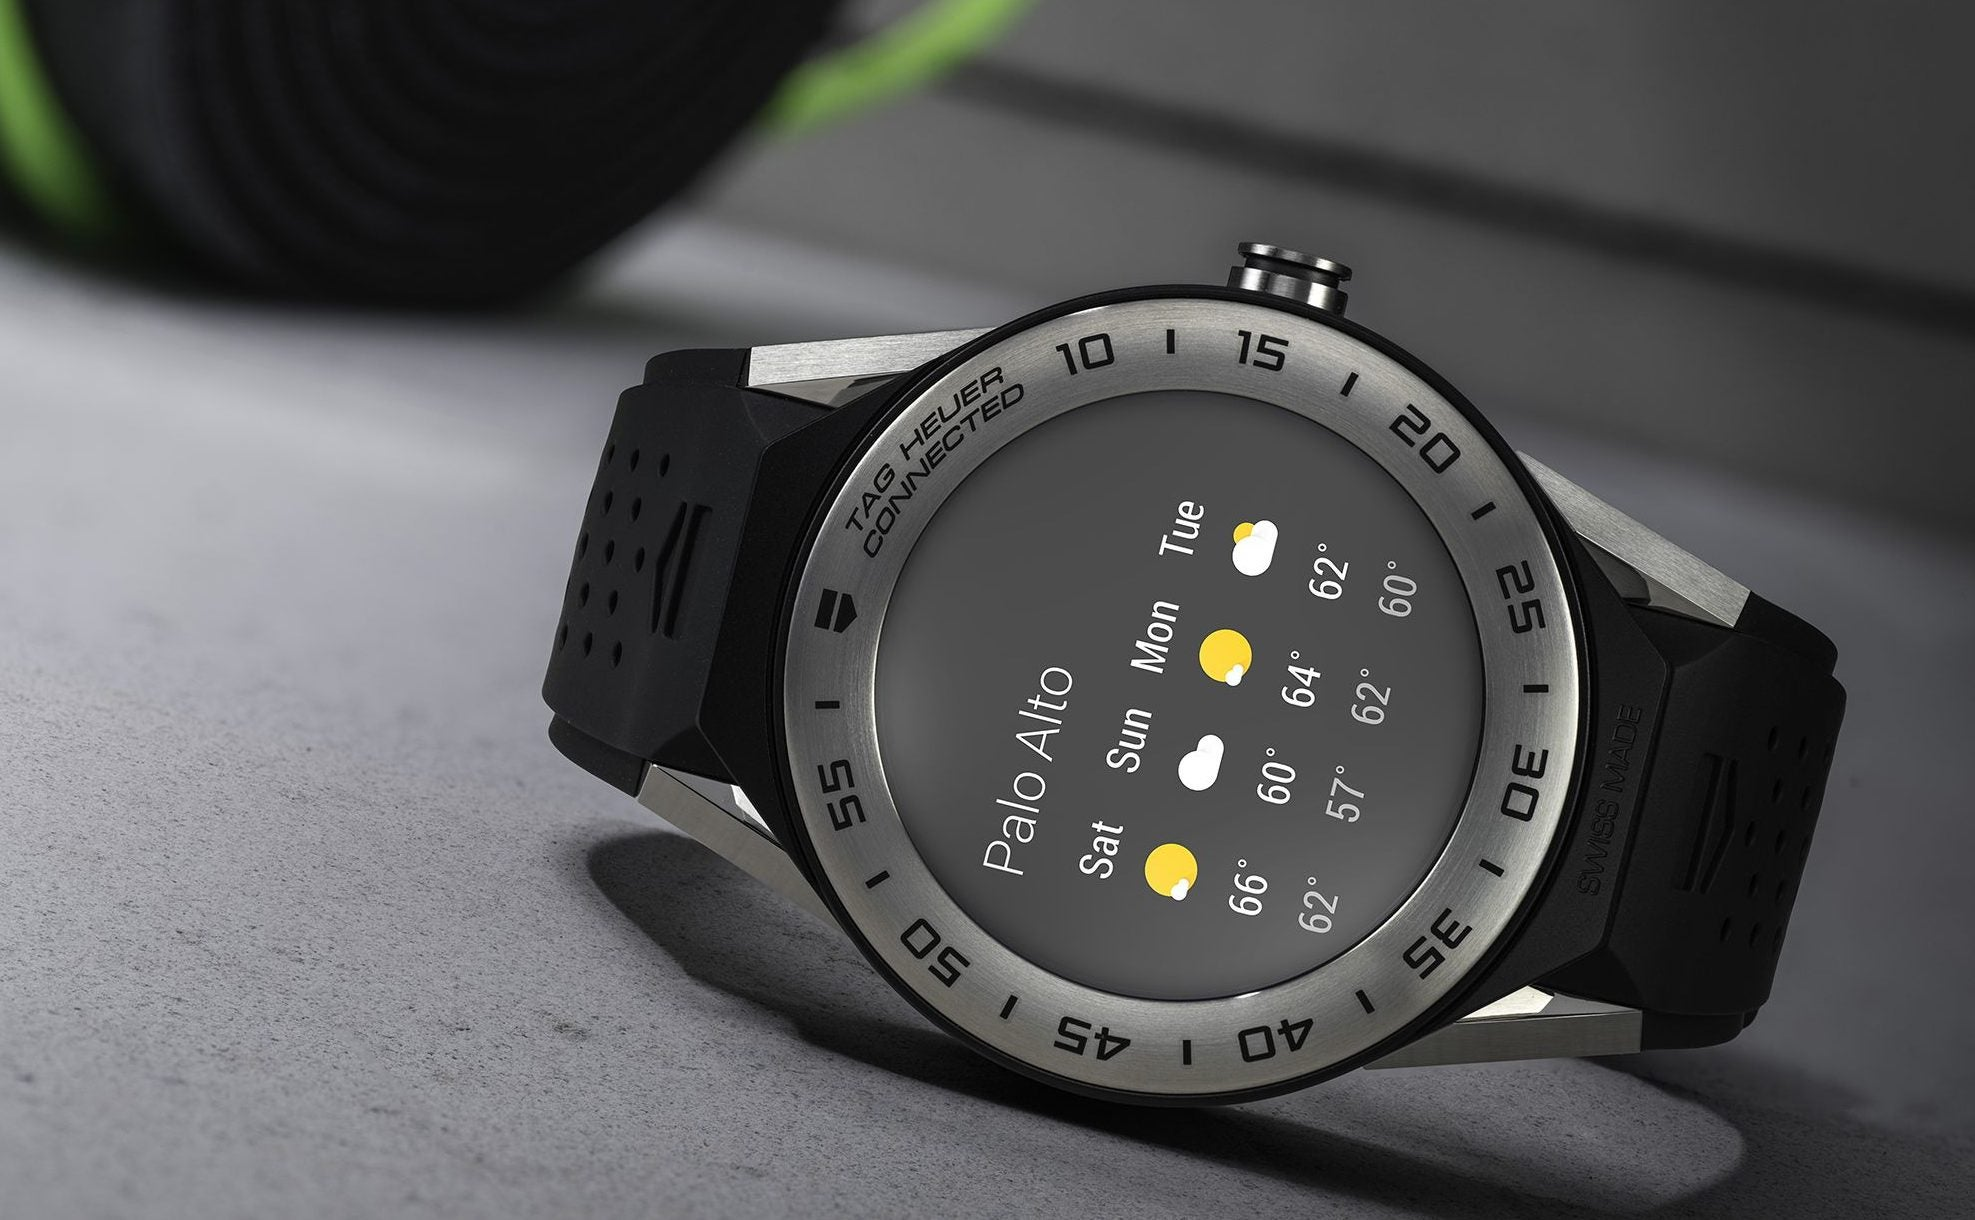 Tag heuer unveils the smaller connected modular 41 android wear smartwatch trusted reviews for The tag heuer connected modular